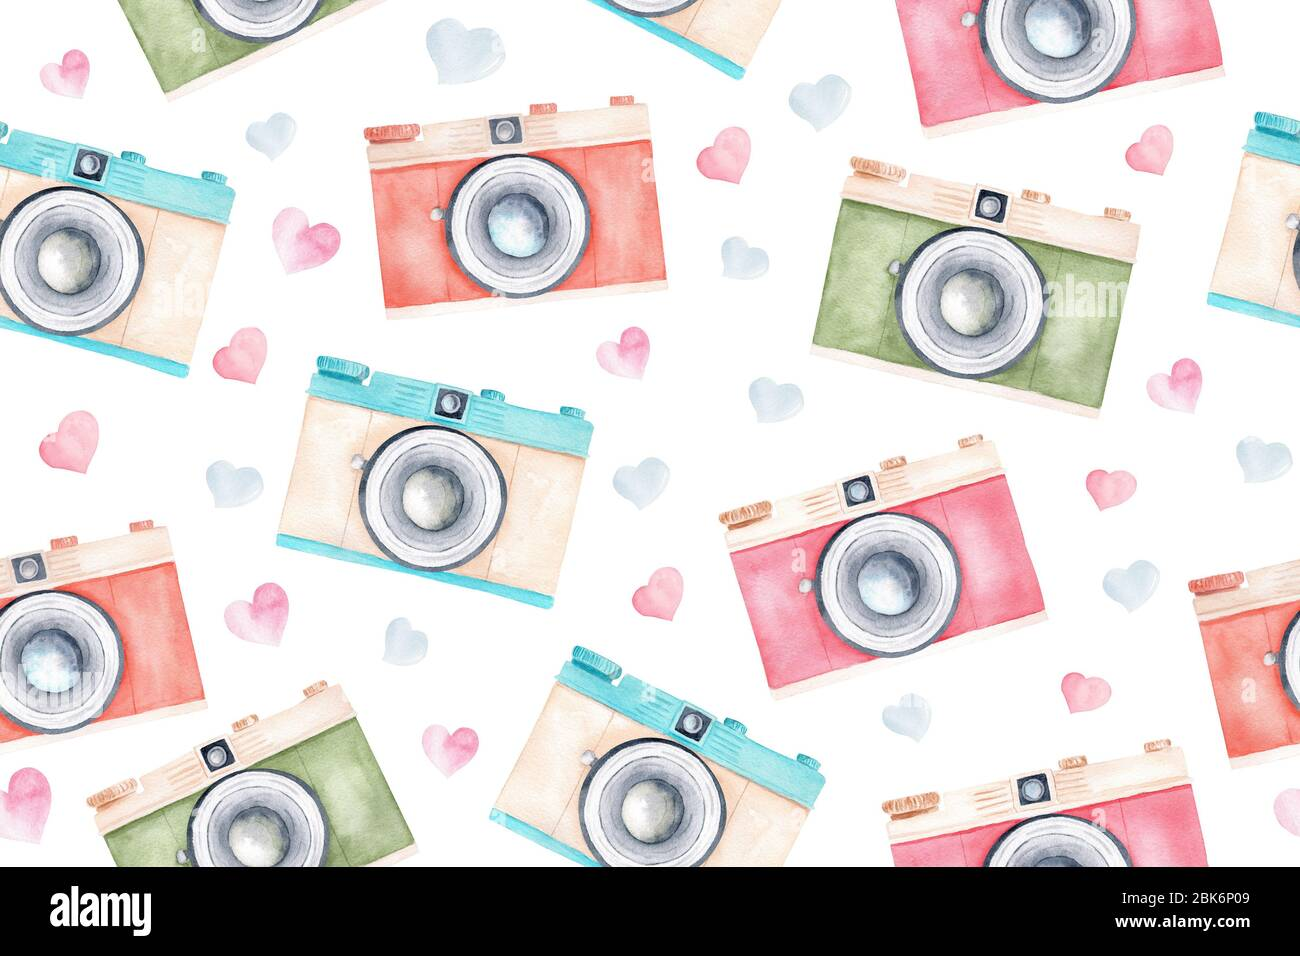 Hand Painted Pastel Color Vintage Retro Cameras And Hearts Watercolor Clipart Seamless Pattern Digital Paper Isolated On White Background Stock Photo Alamy